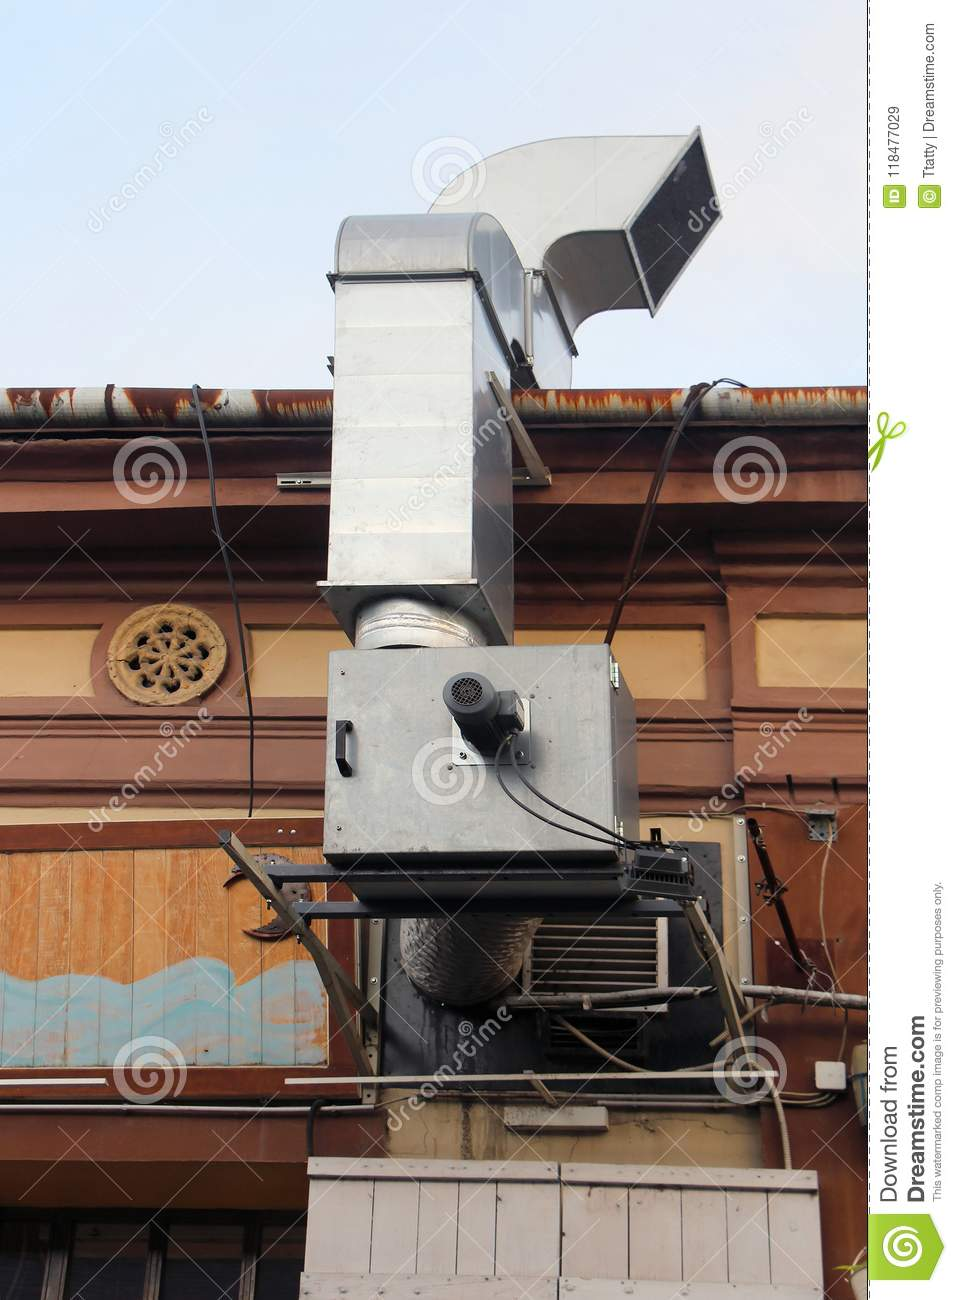 External Kitchen Exhaust System Stock Image - Image of system ...